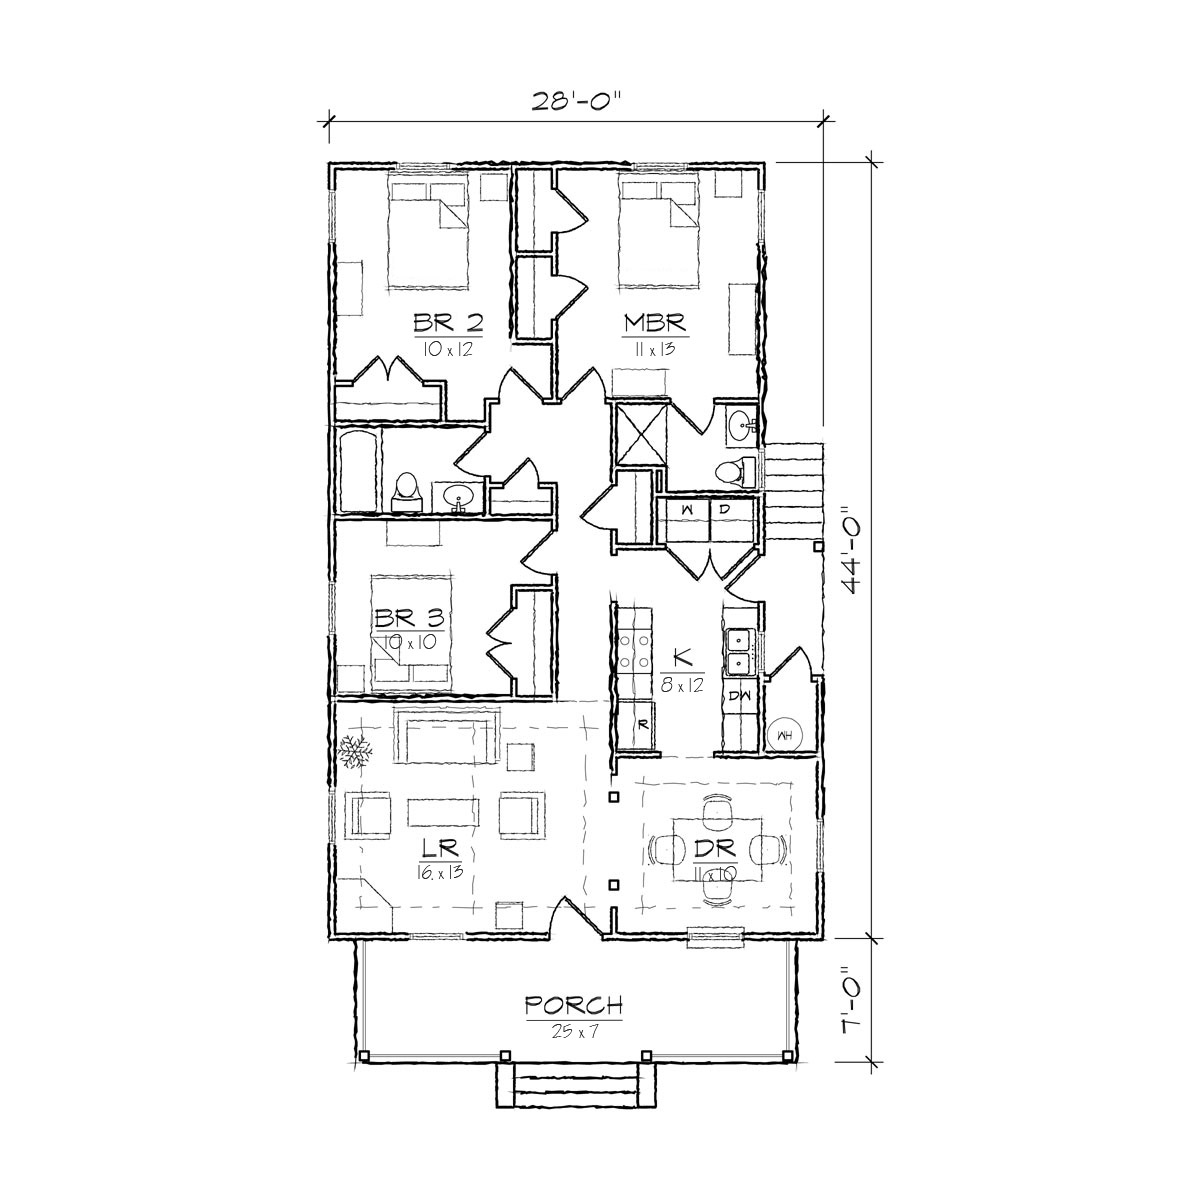 Single story open floor plans simple bungalow floor plans for Easy house plans free